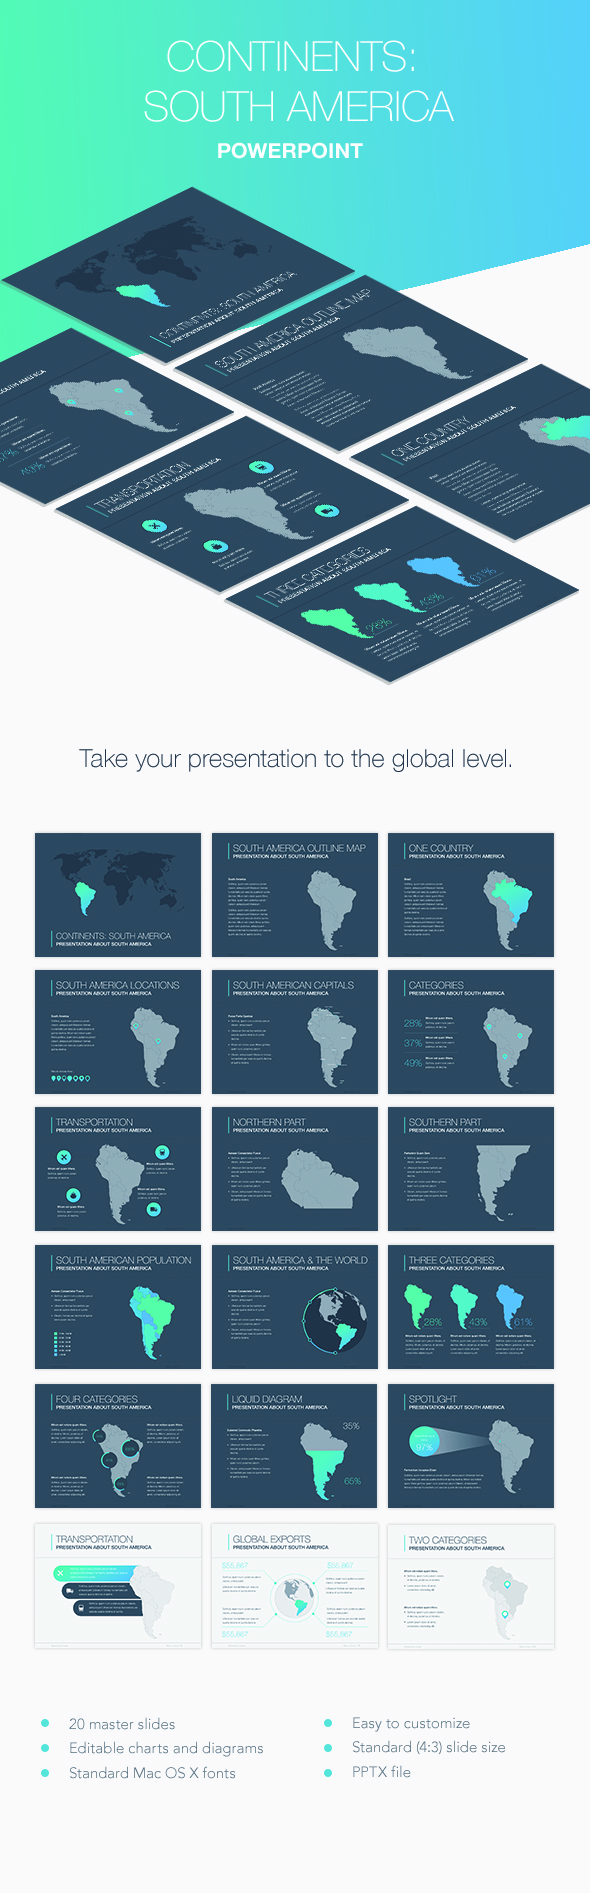 Continents south america powerpoint template by jumsoft graphicriver continents south america powerpoint template keynote templates presentation templates toneelgroepblik Choice Image